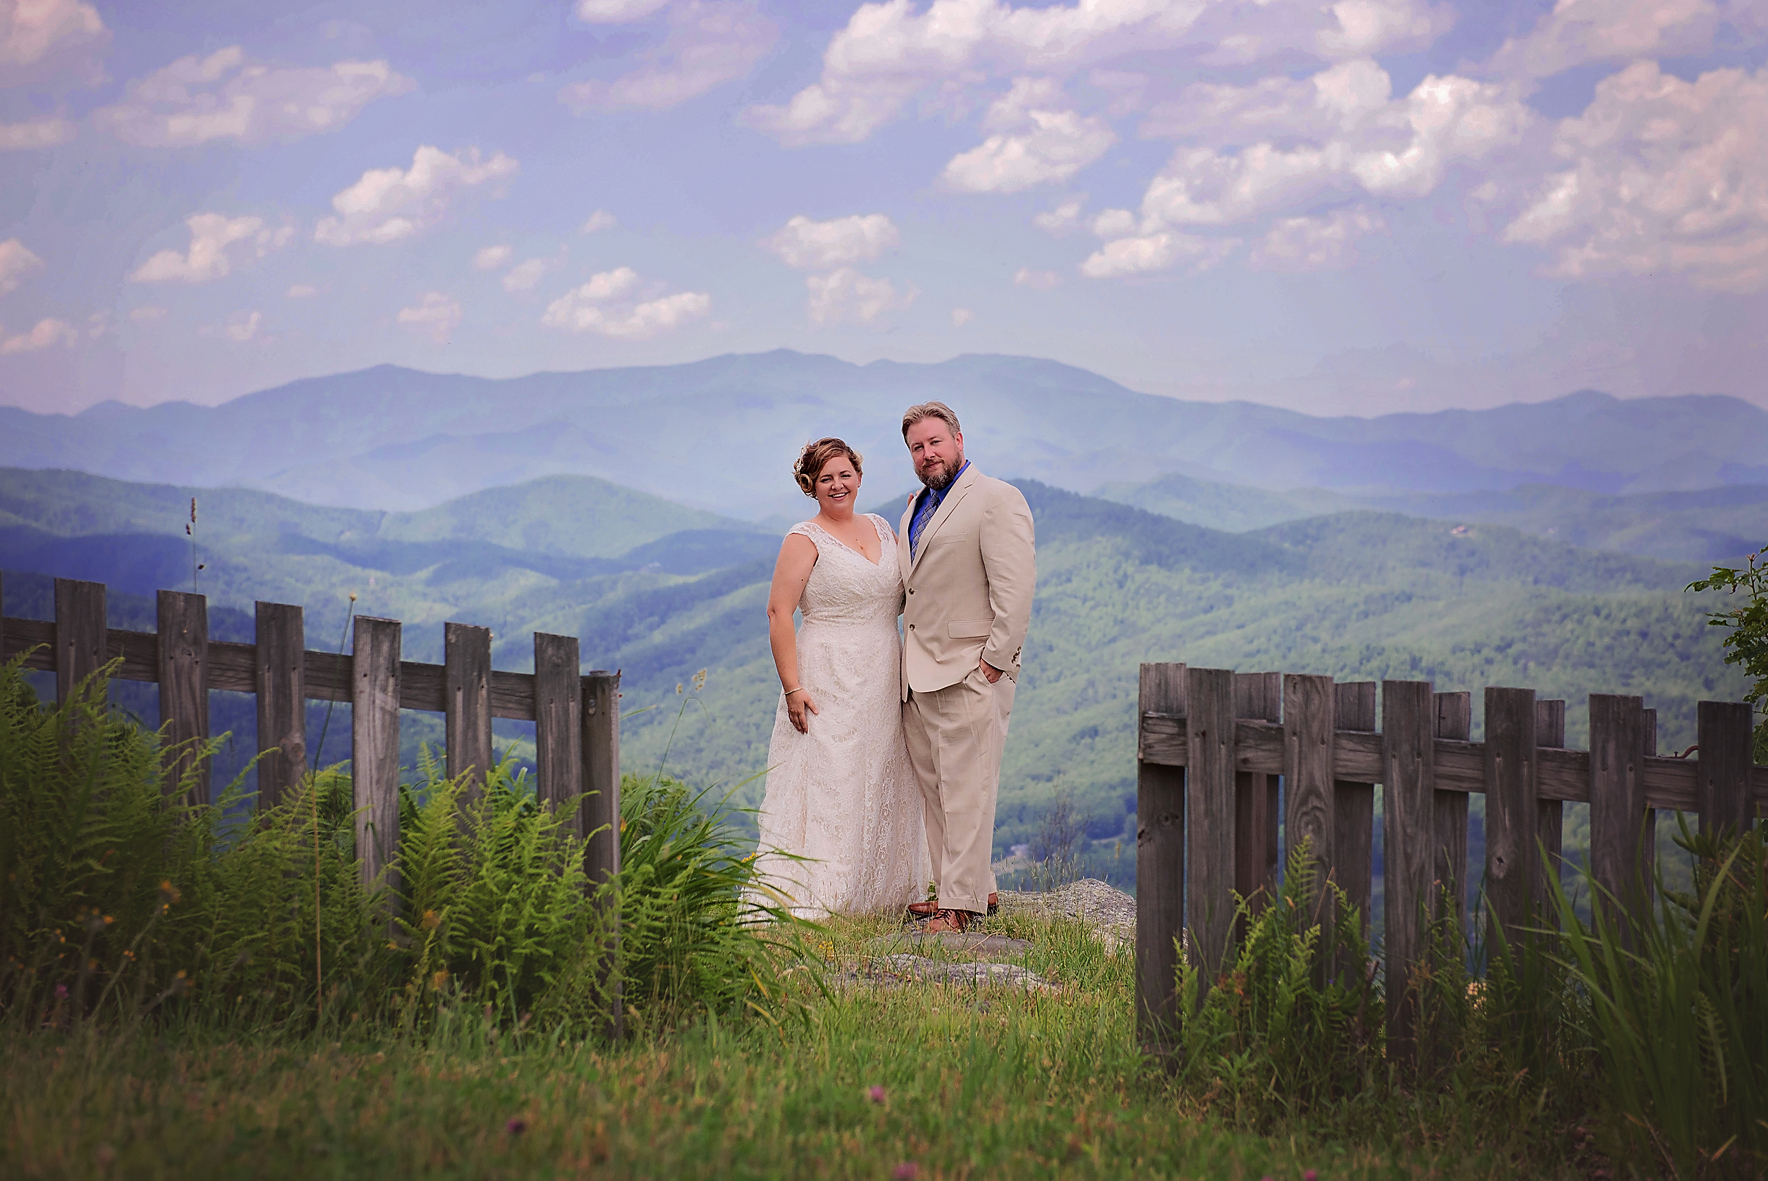 mountain-wedding-portrait-bride-groom